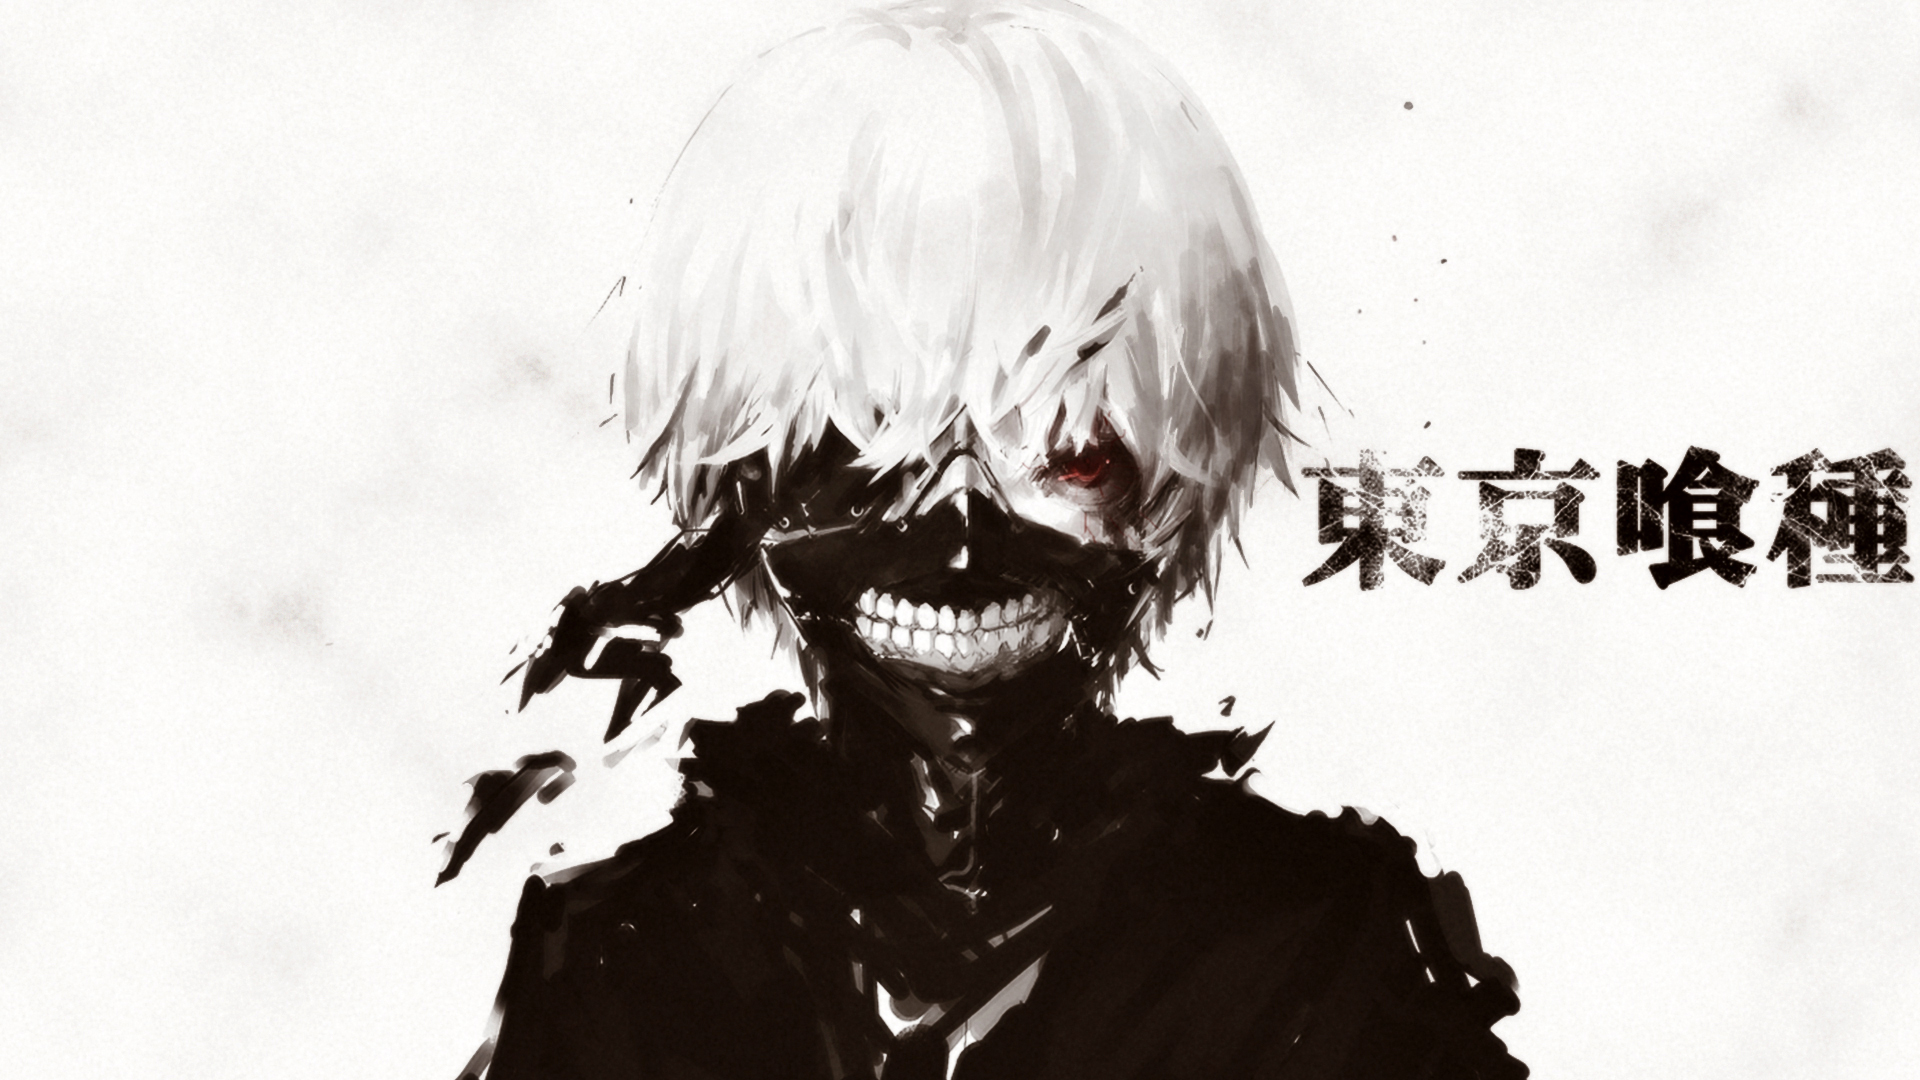 Tokyo Ghoul Theme For Windows 10 8 7